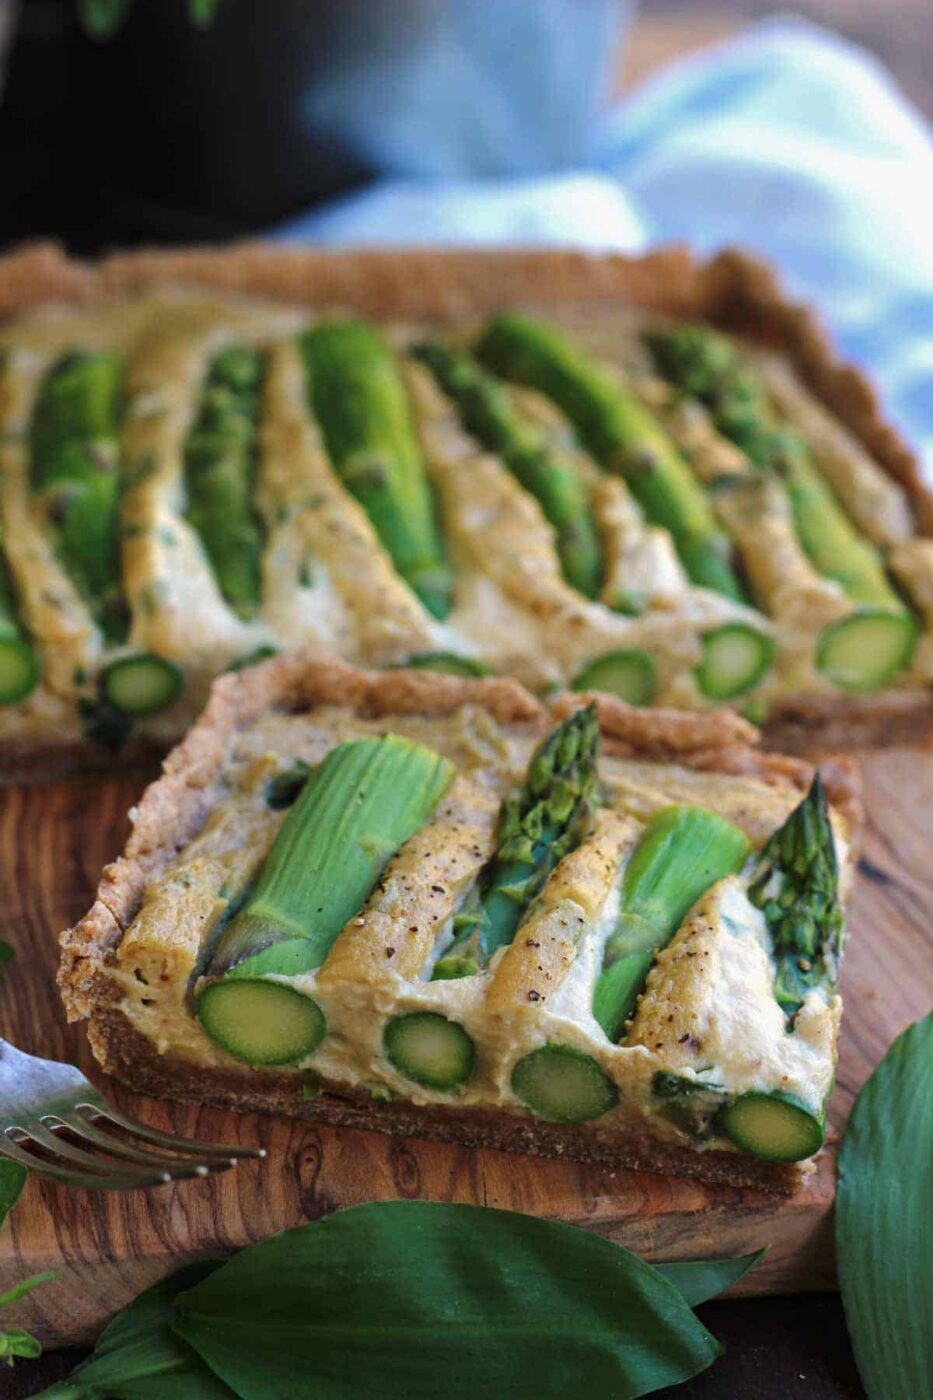 Vegan asparagus quiche + 15 Farmers market recipes to make in April! Delicious, vegetarian, (mostly) healthy spring recipes made with fresh, seasonal produce from your local farmers market or CSA bin. Eat local! // Rhubarbarians